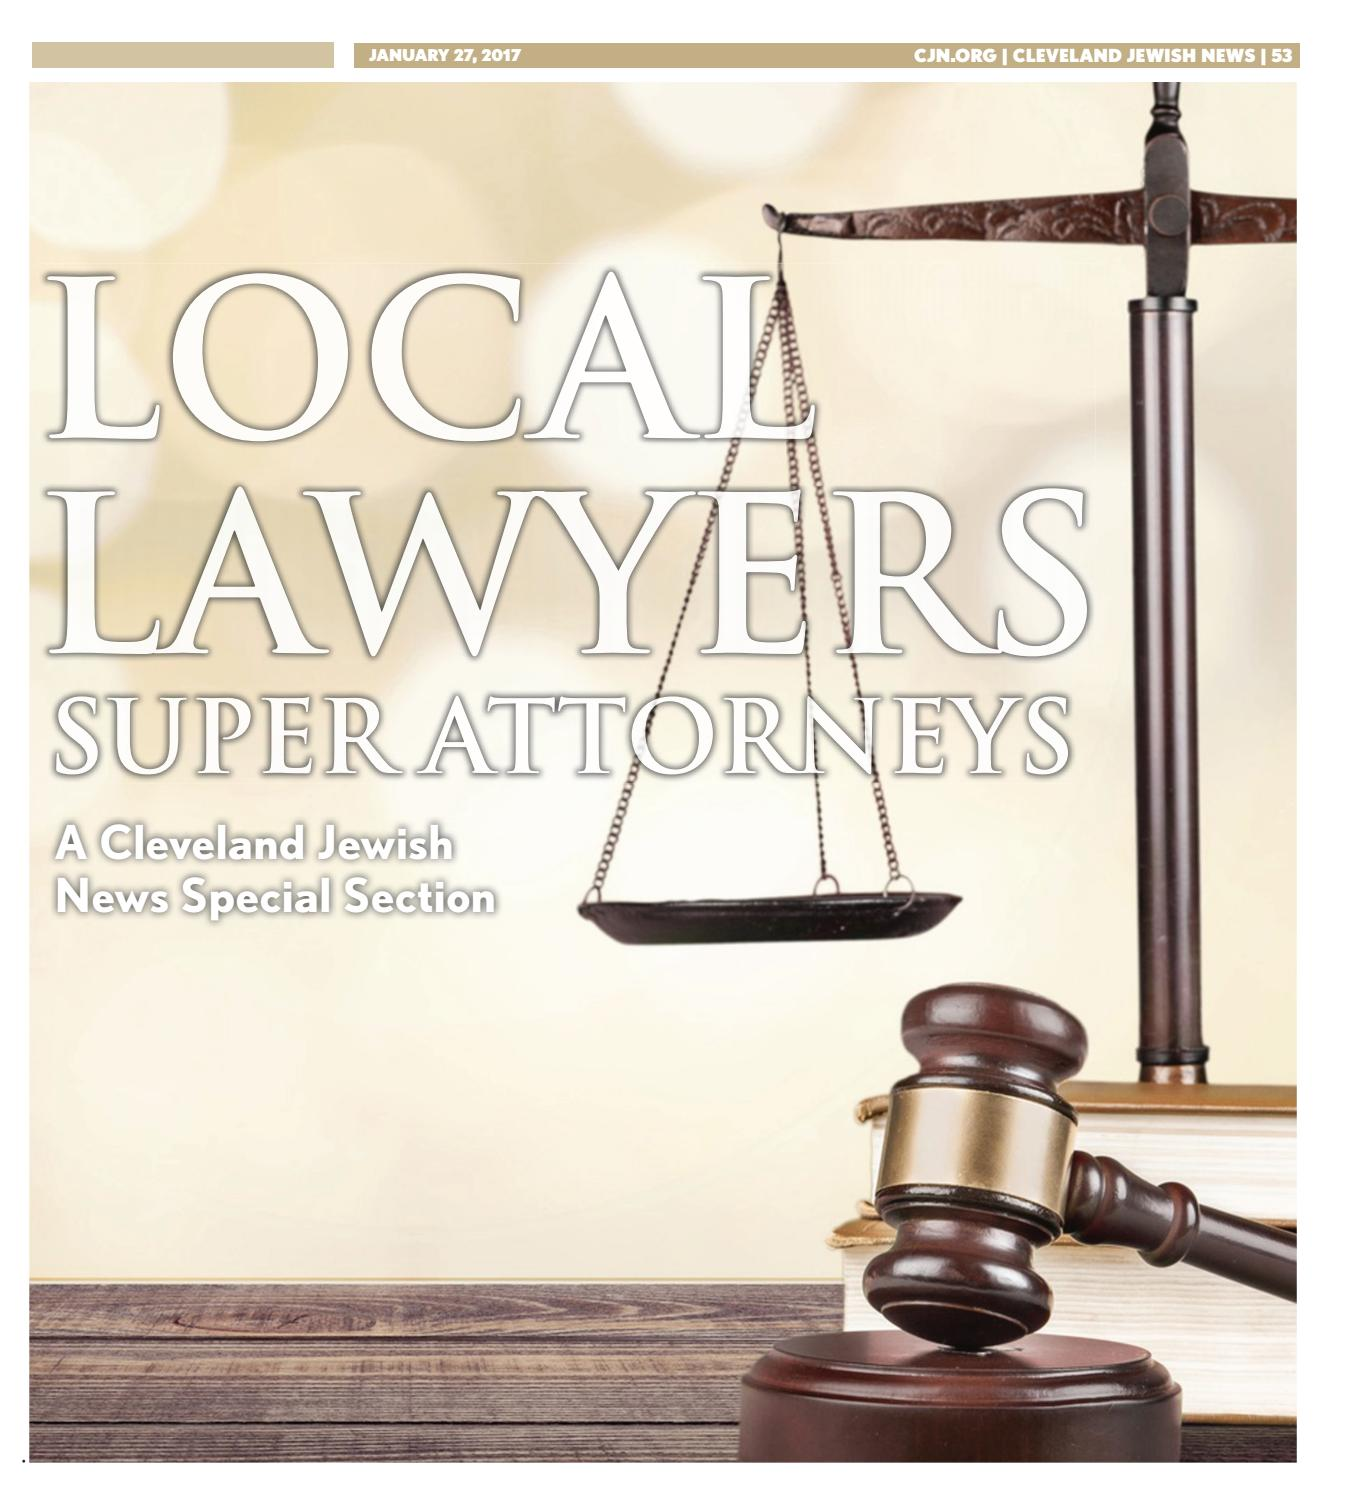 Local Lawyers Super Attorneys By Cleveland Jewish